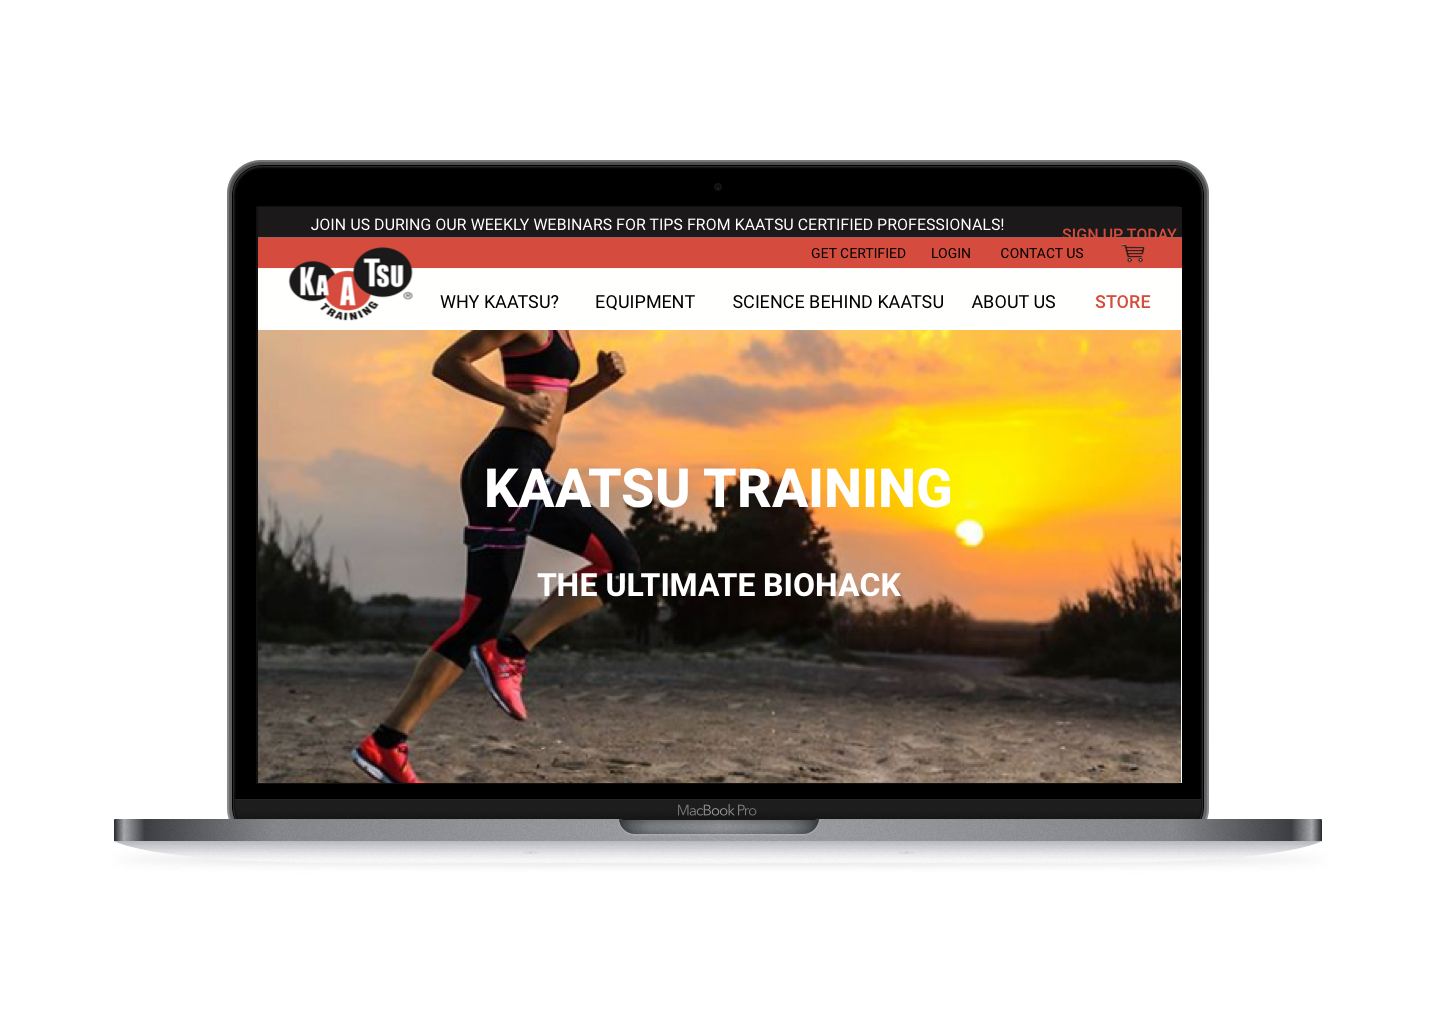 """Bukht and her UX team at GA Assembly took KAATSU Global to a completely new level with their thought-process, market research and website design. She was fast, thorough and spot on. Their results helped us reach better results ourselves.""     Steven Munatones    President & Co-founder of KAATSU Global, Inc."